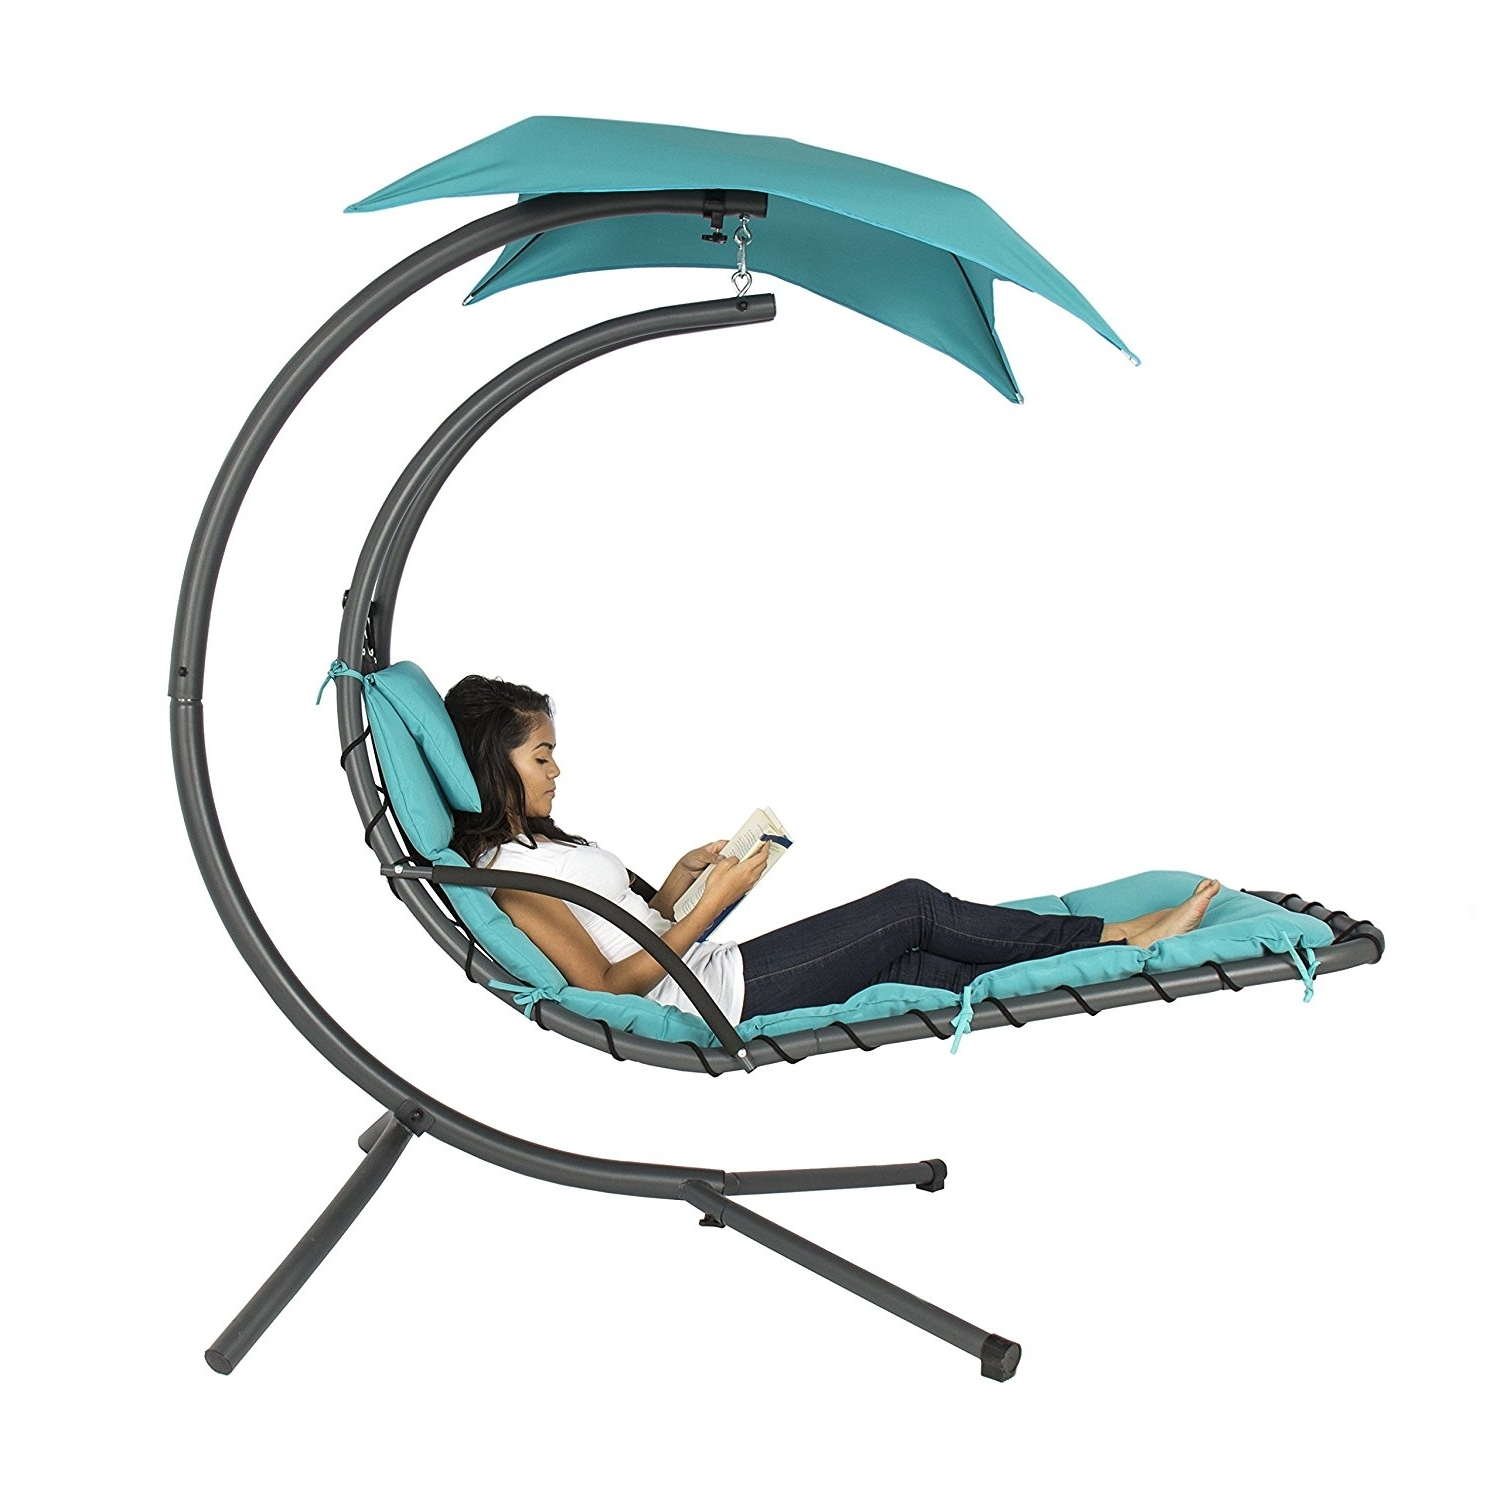 Most Popular Chaise Lounge Chair With Canopy In Amazon: Best Choice Products Hanging Chaise Lounger Chair Arc (View 14 of 15)